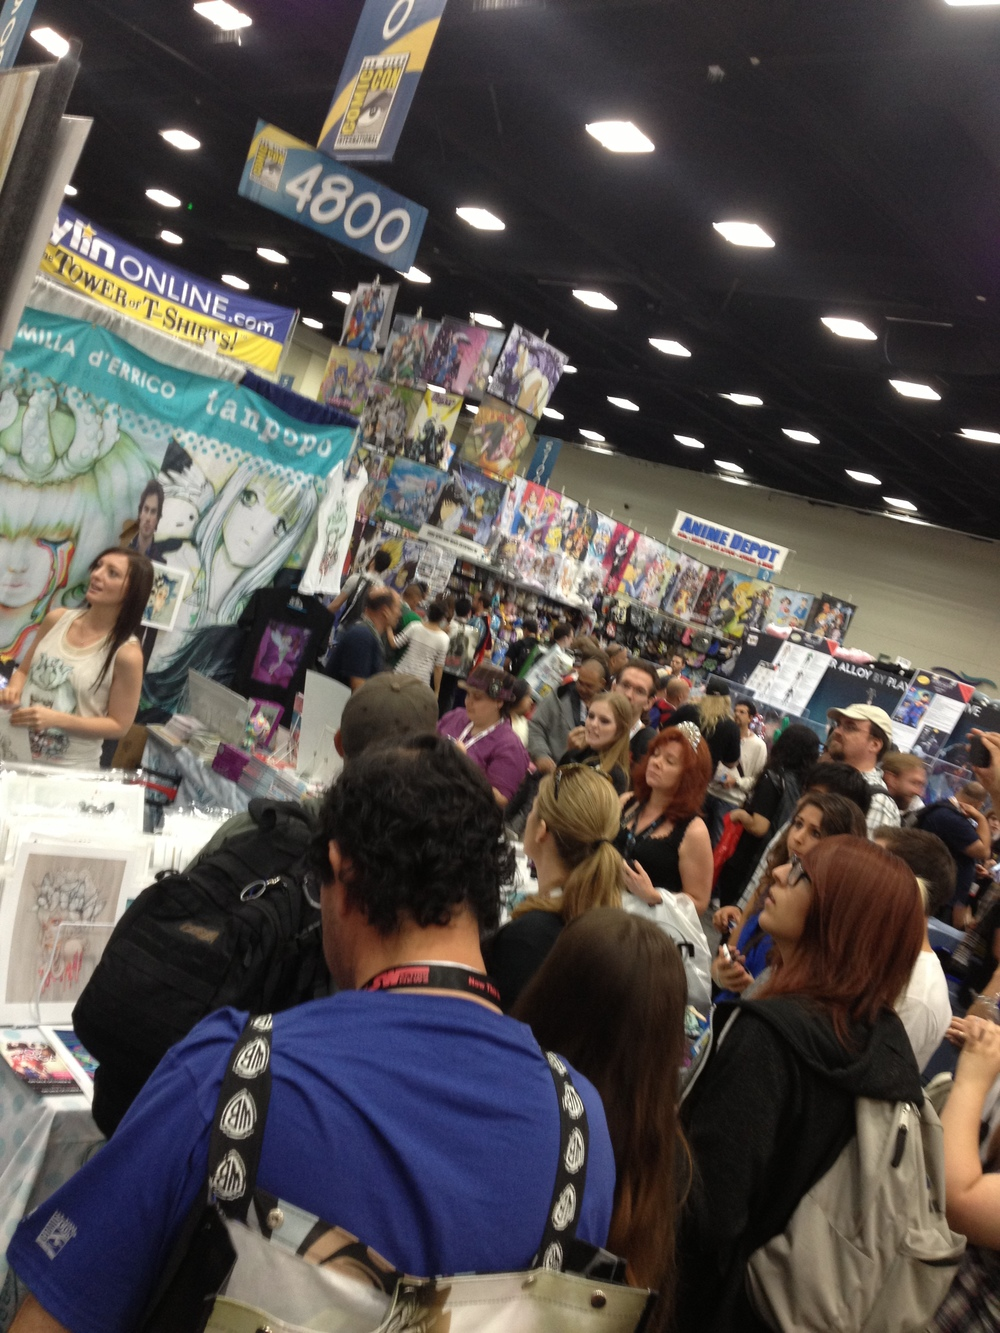 Booth 4723 was always packed! Way to go Camilla!